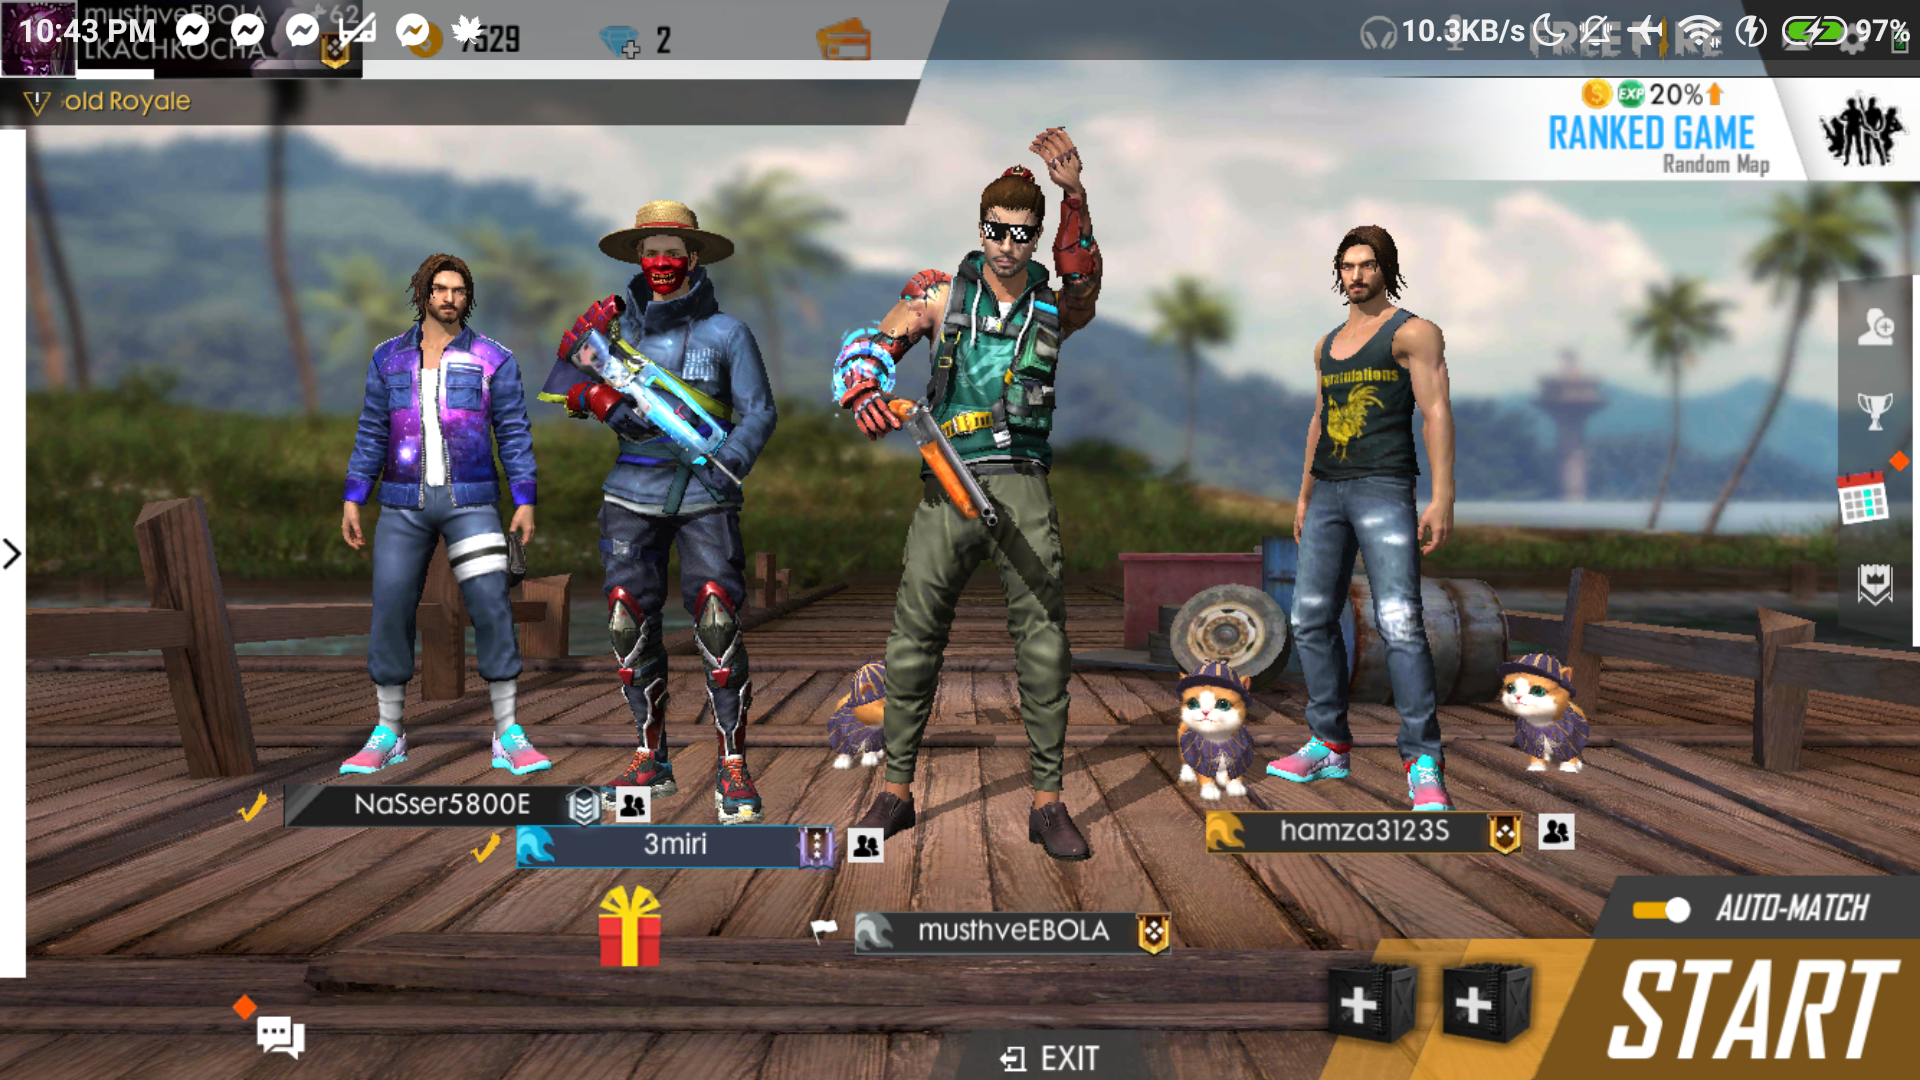 Garena Free Fire 1330 Apk Obb For Android Apk Five